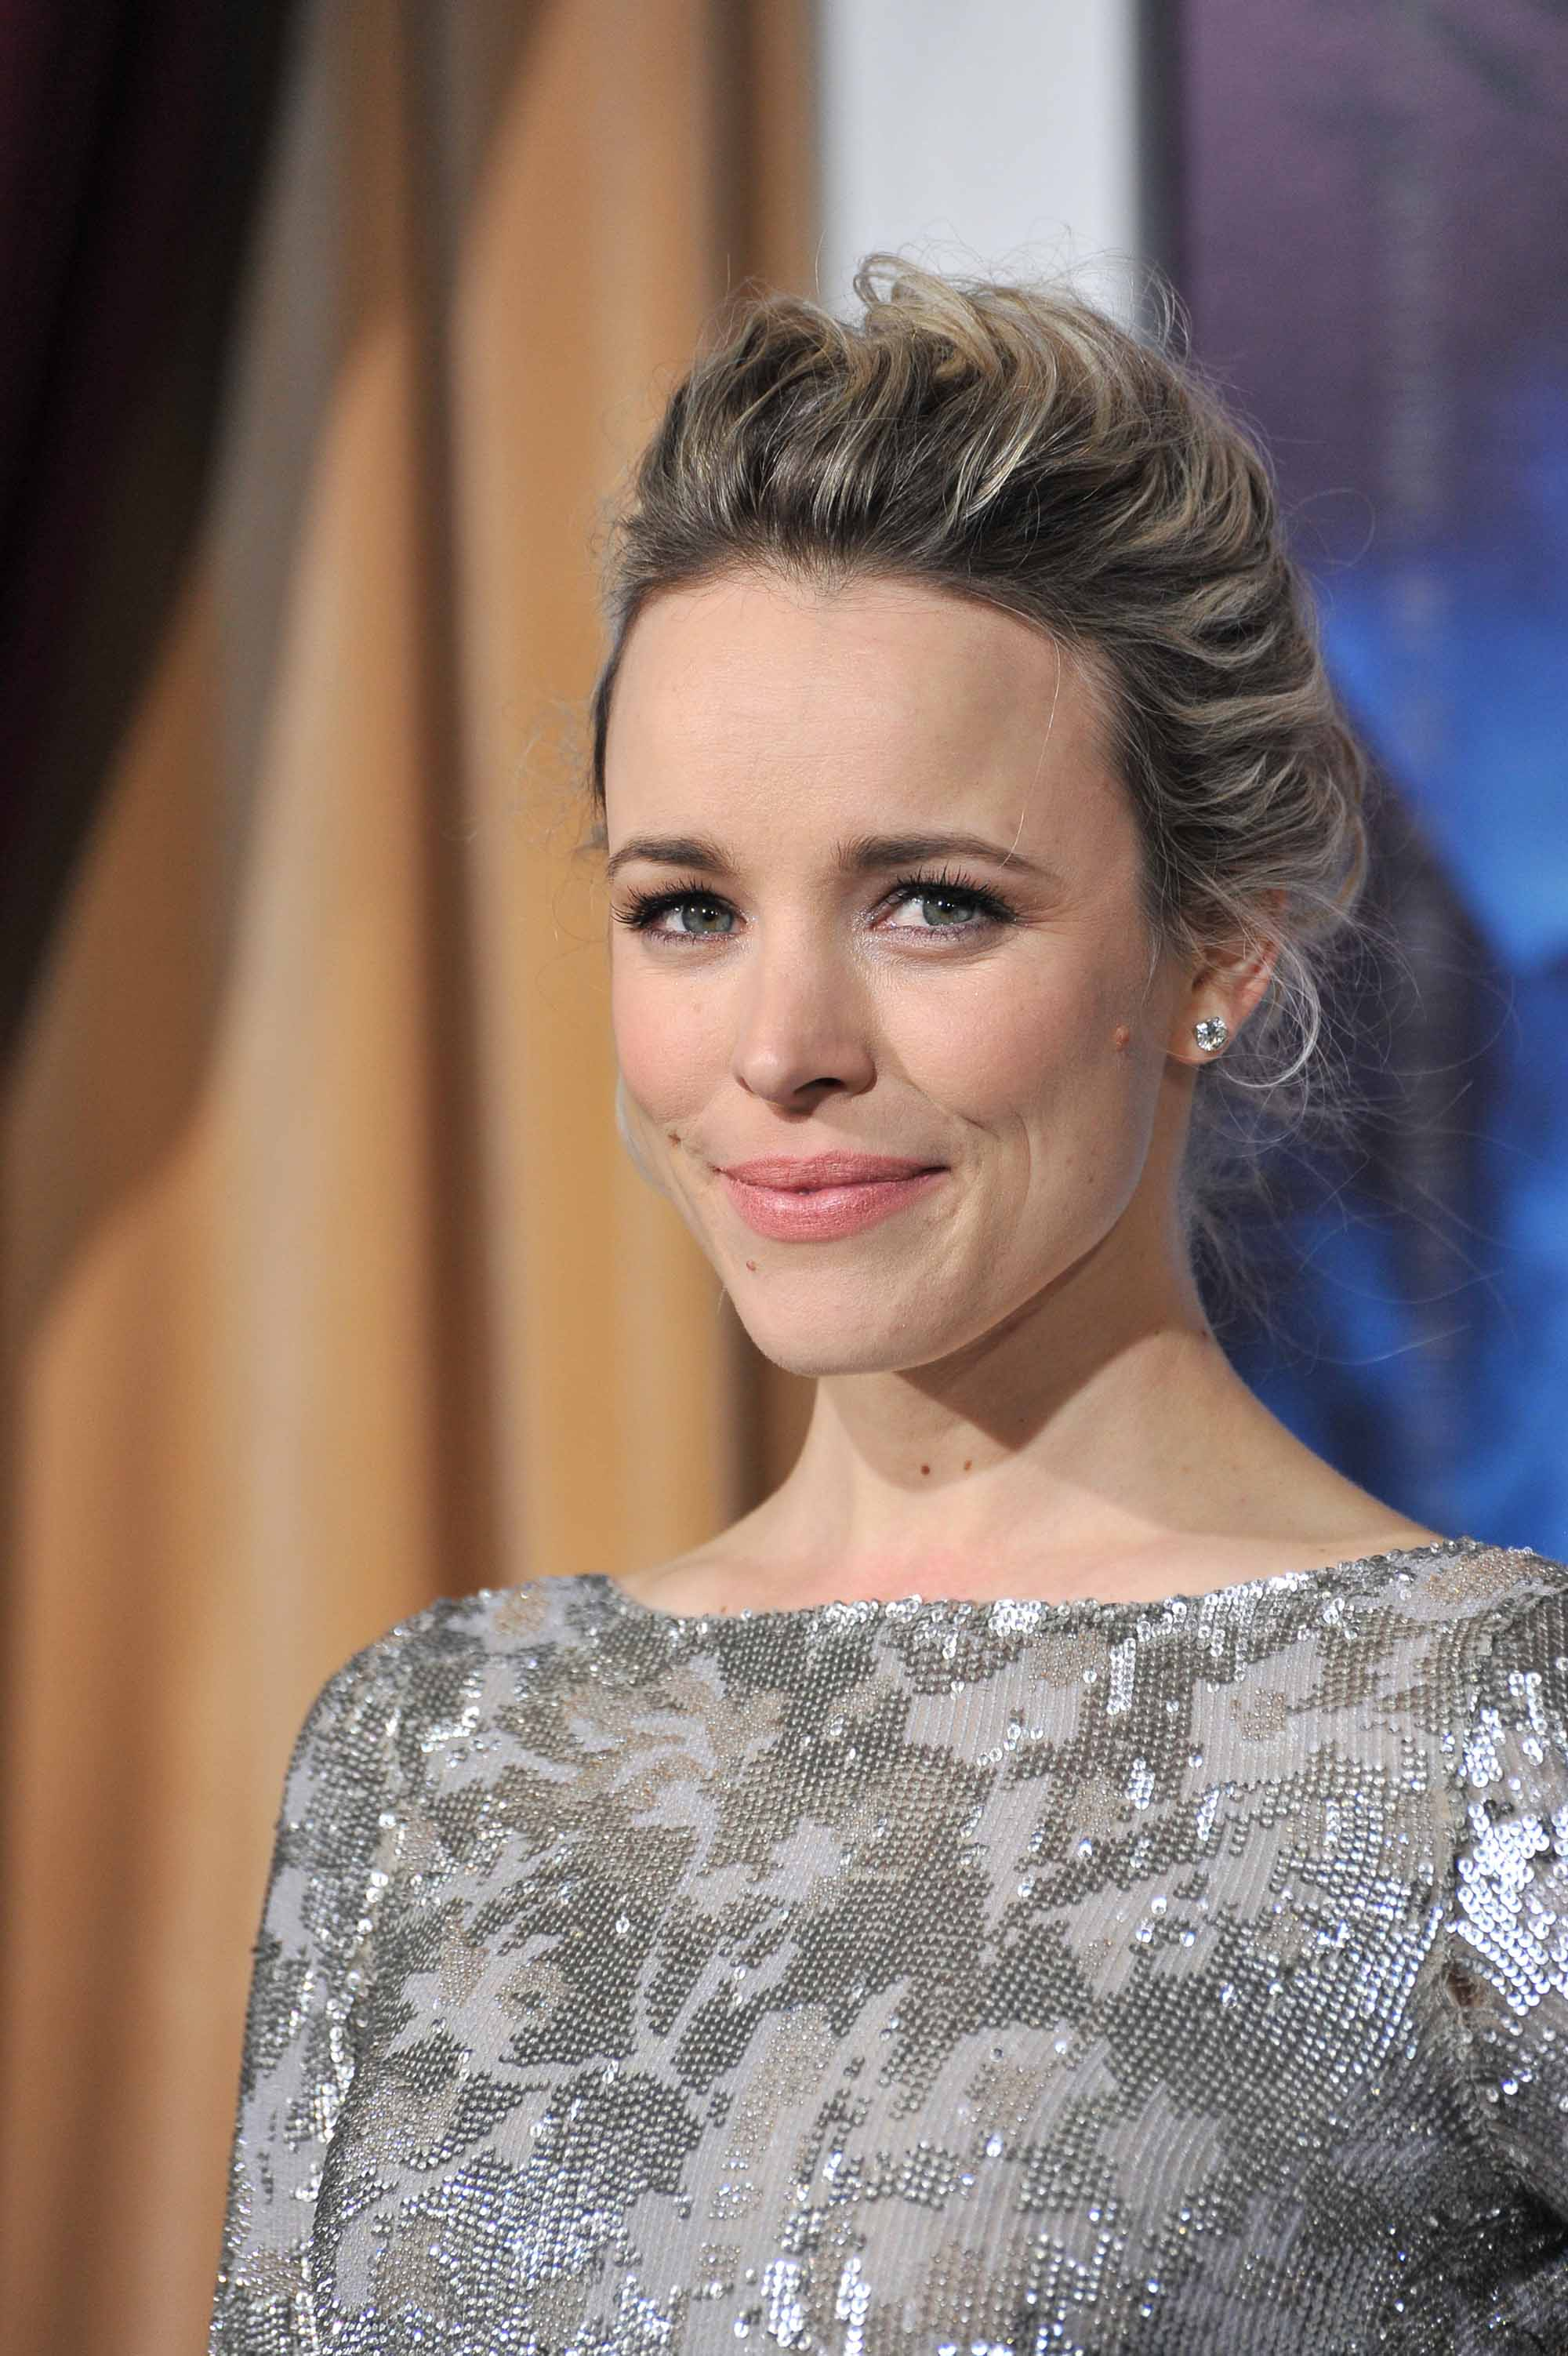 Rachel McAdams | The Canadian Encyclopedia Rachel Mcadams